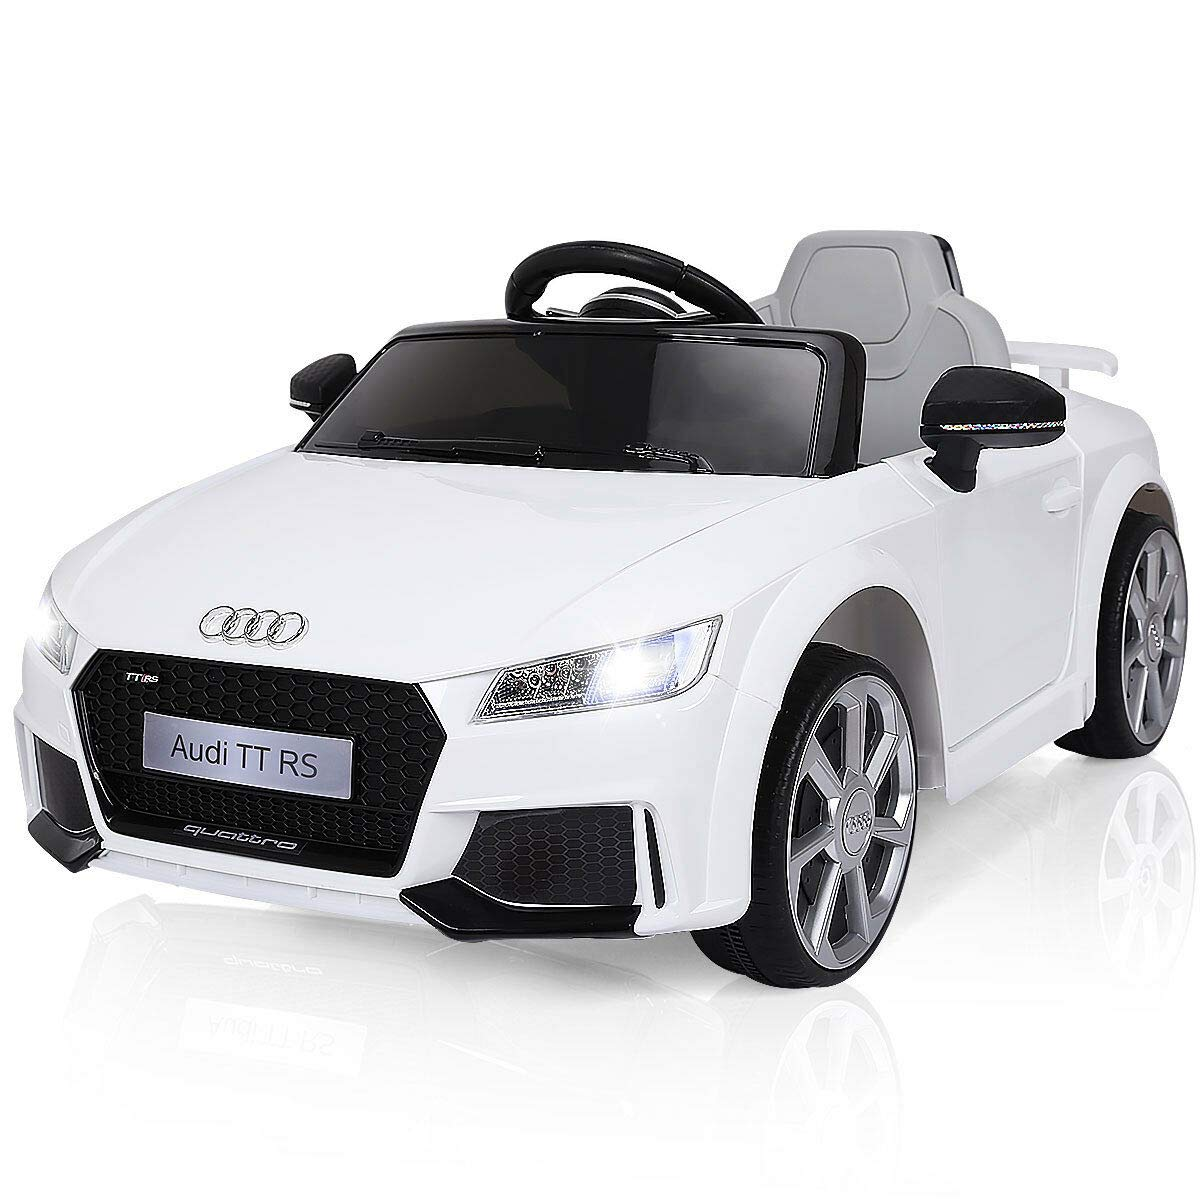 Costzon Kids Ride On Car, 12V Licensed Audi TT RS, Remote Control Manual Two Modes Operation, MP3 Lights, White